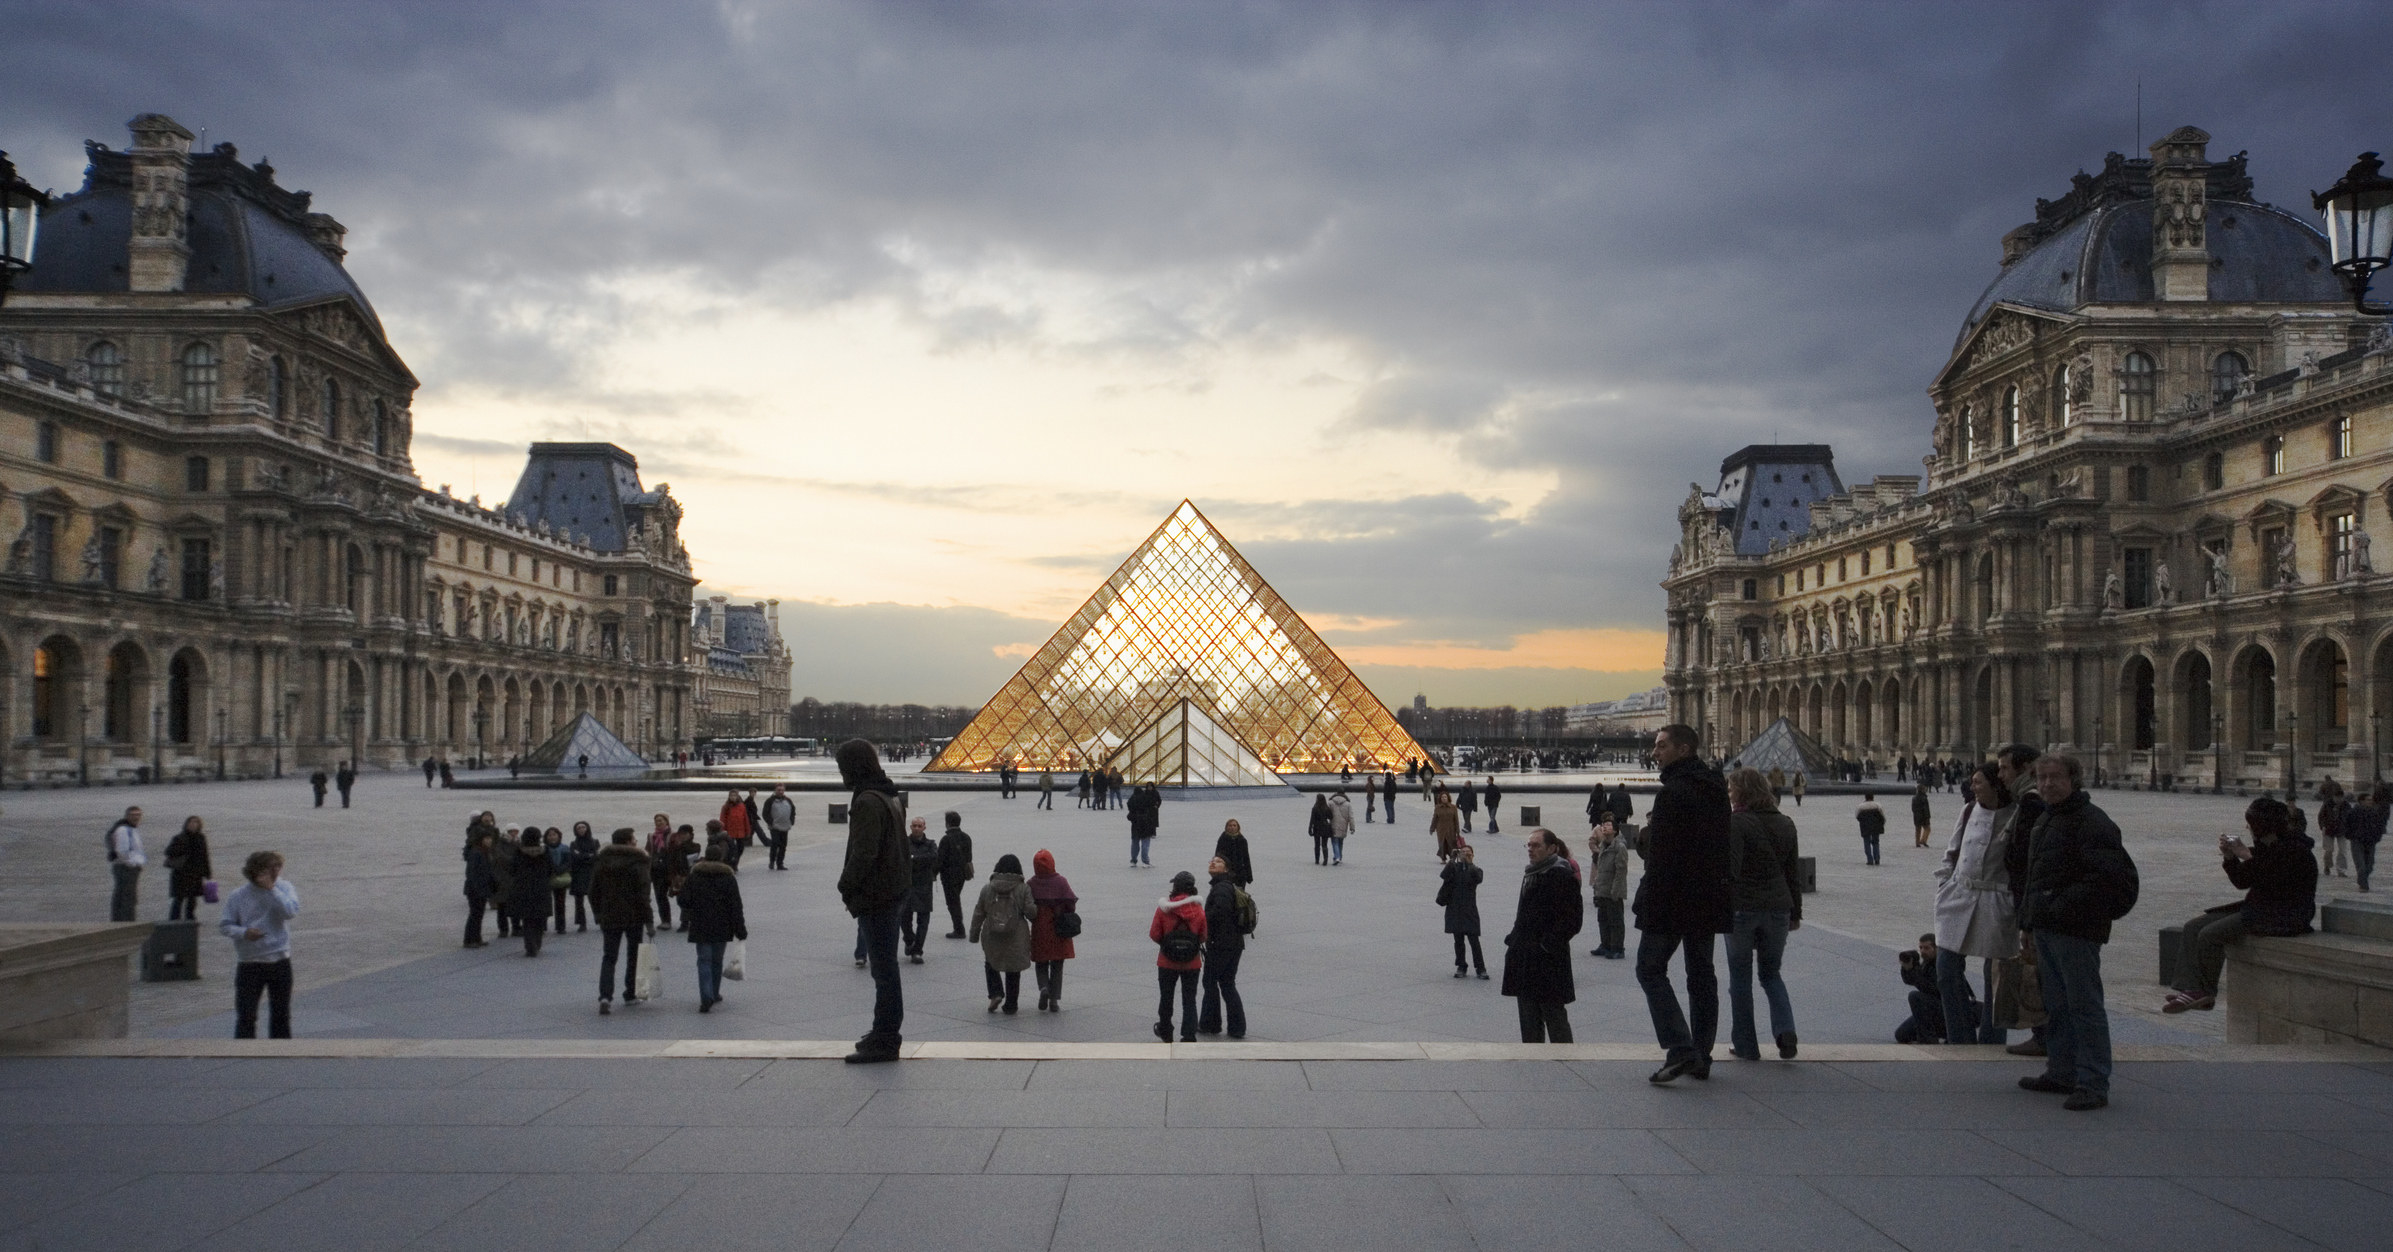 People outside of the Louvre in Paris.